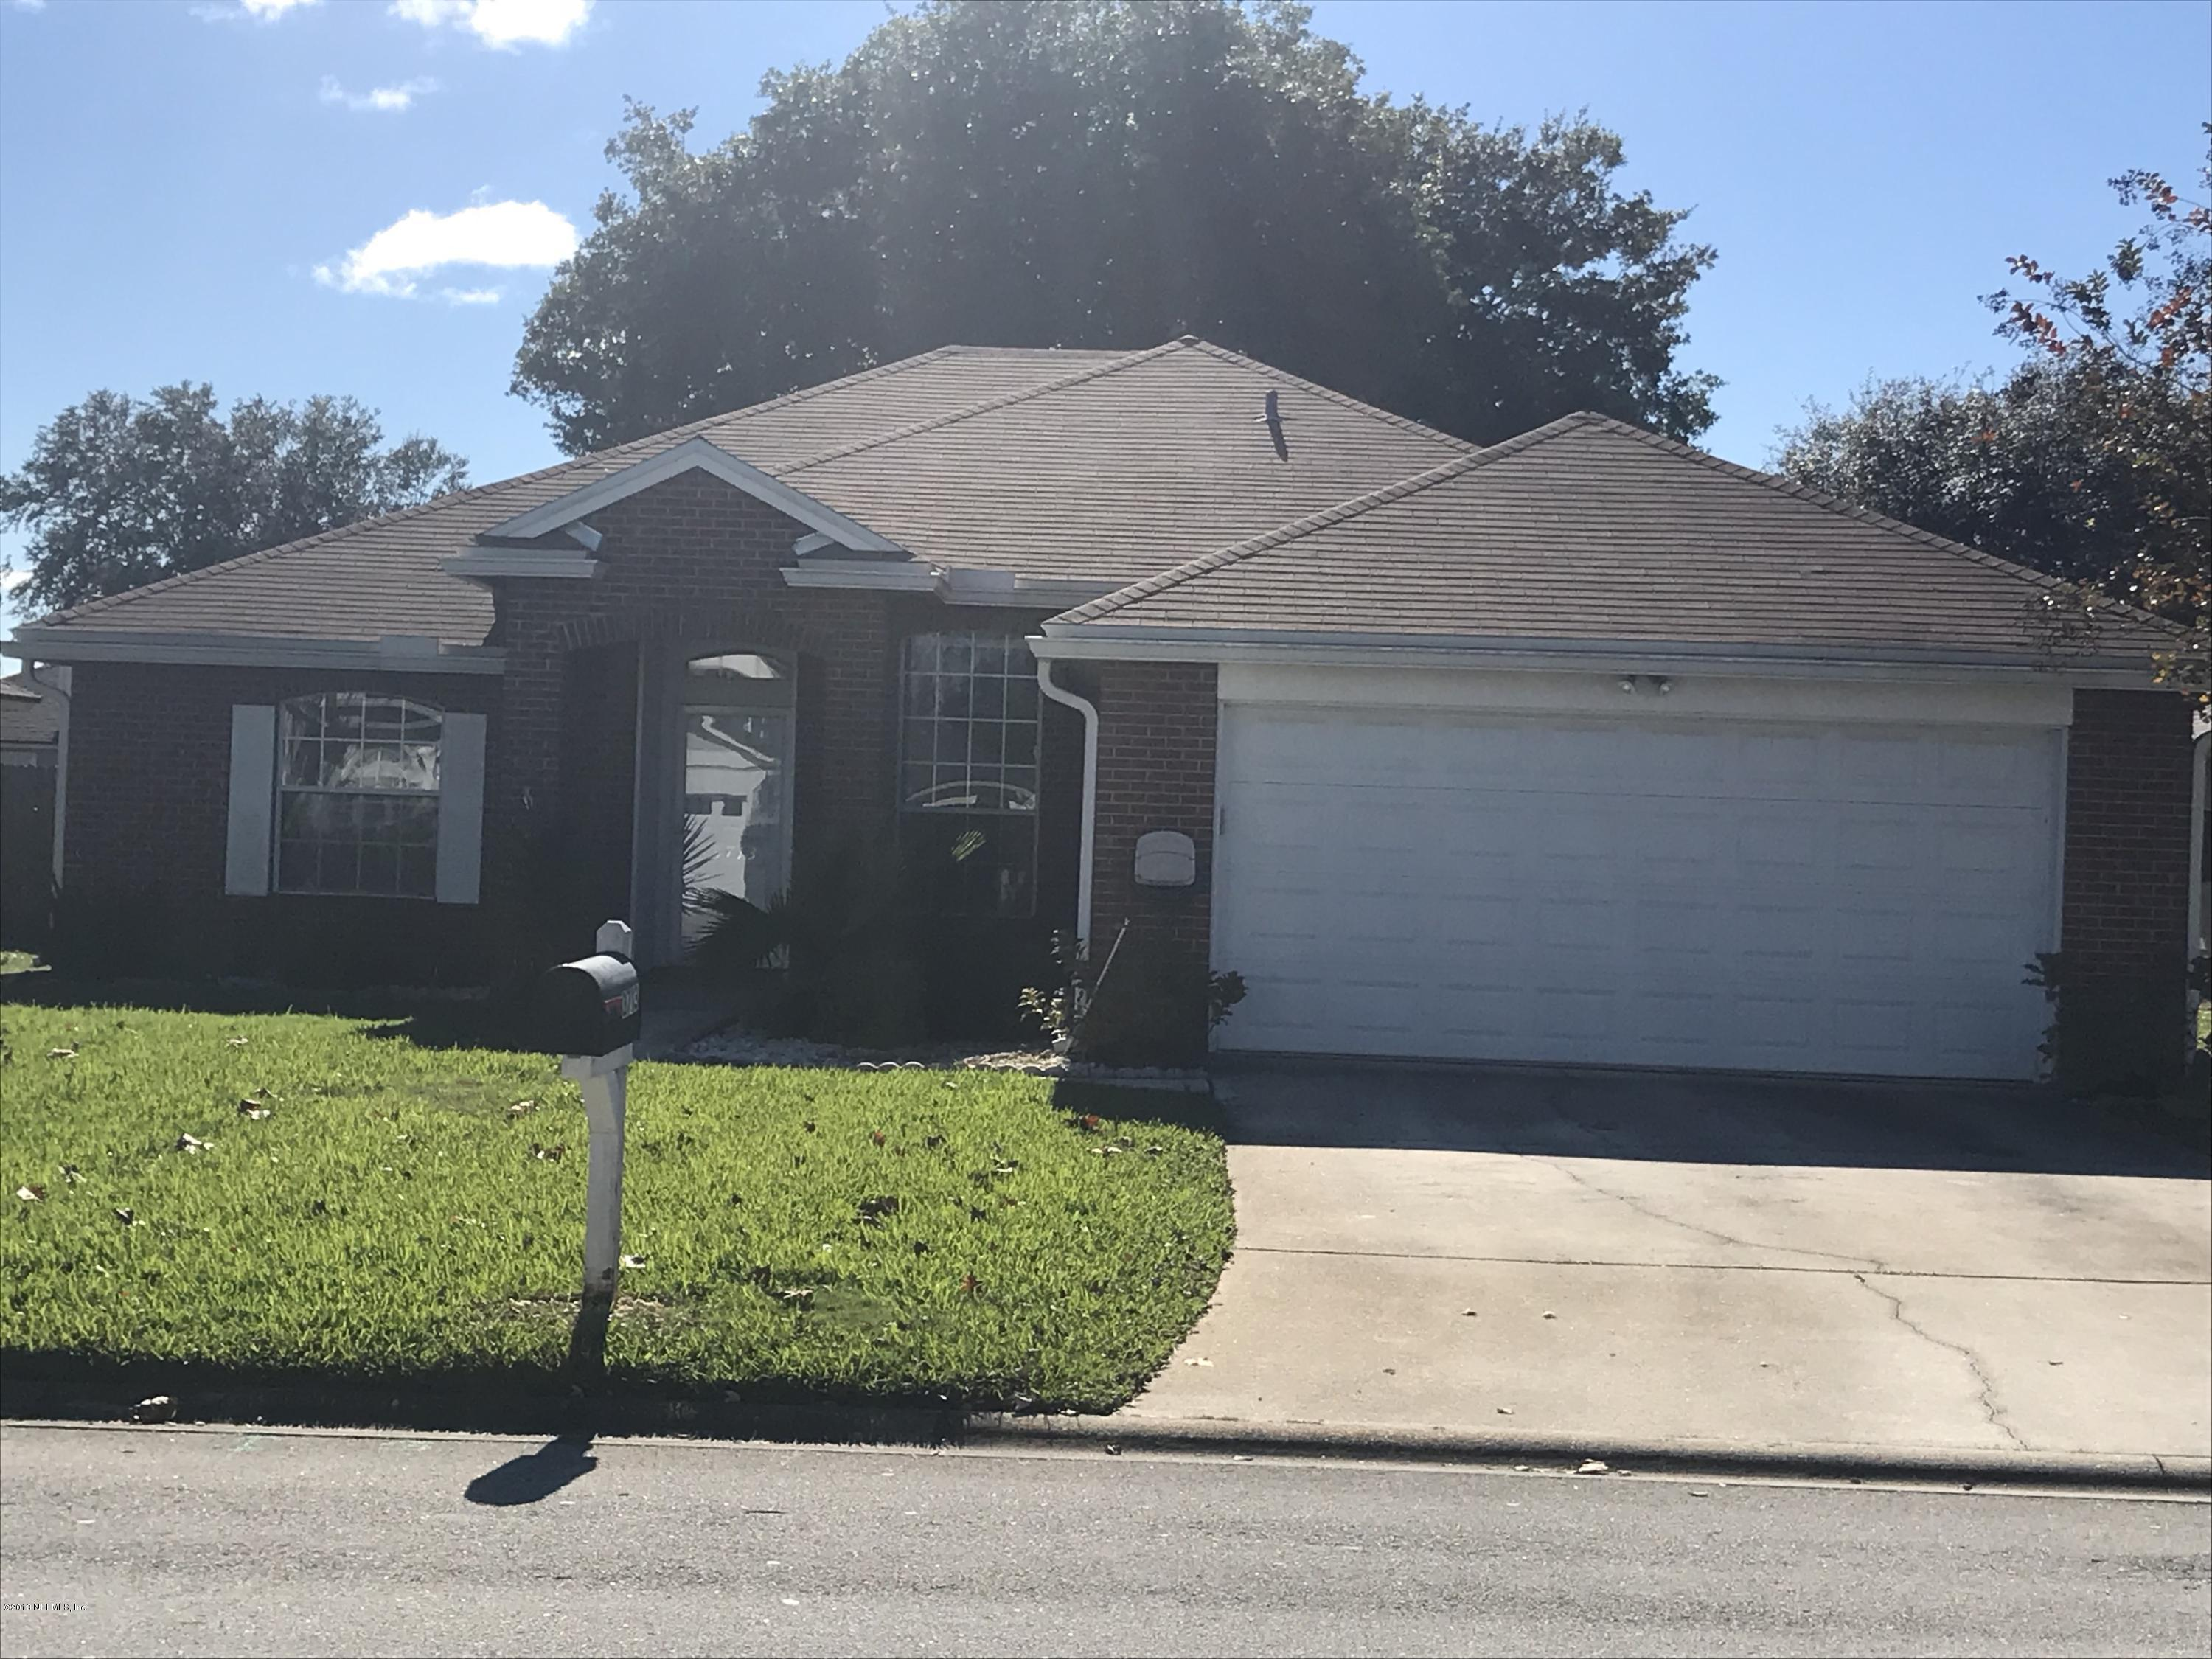 3713 WOODBRIAR, ORANGE PARK, FLORIDA 32073, 3 Bedrooms Bedrooms, ,2 BathroomsBathrooms,Residential - single family,For sale,WOODBRIAR,970425